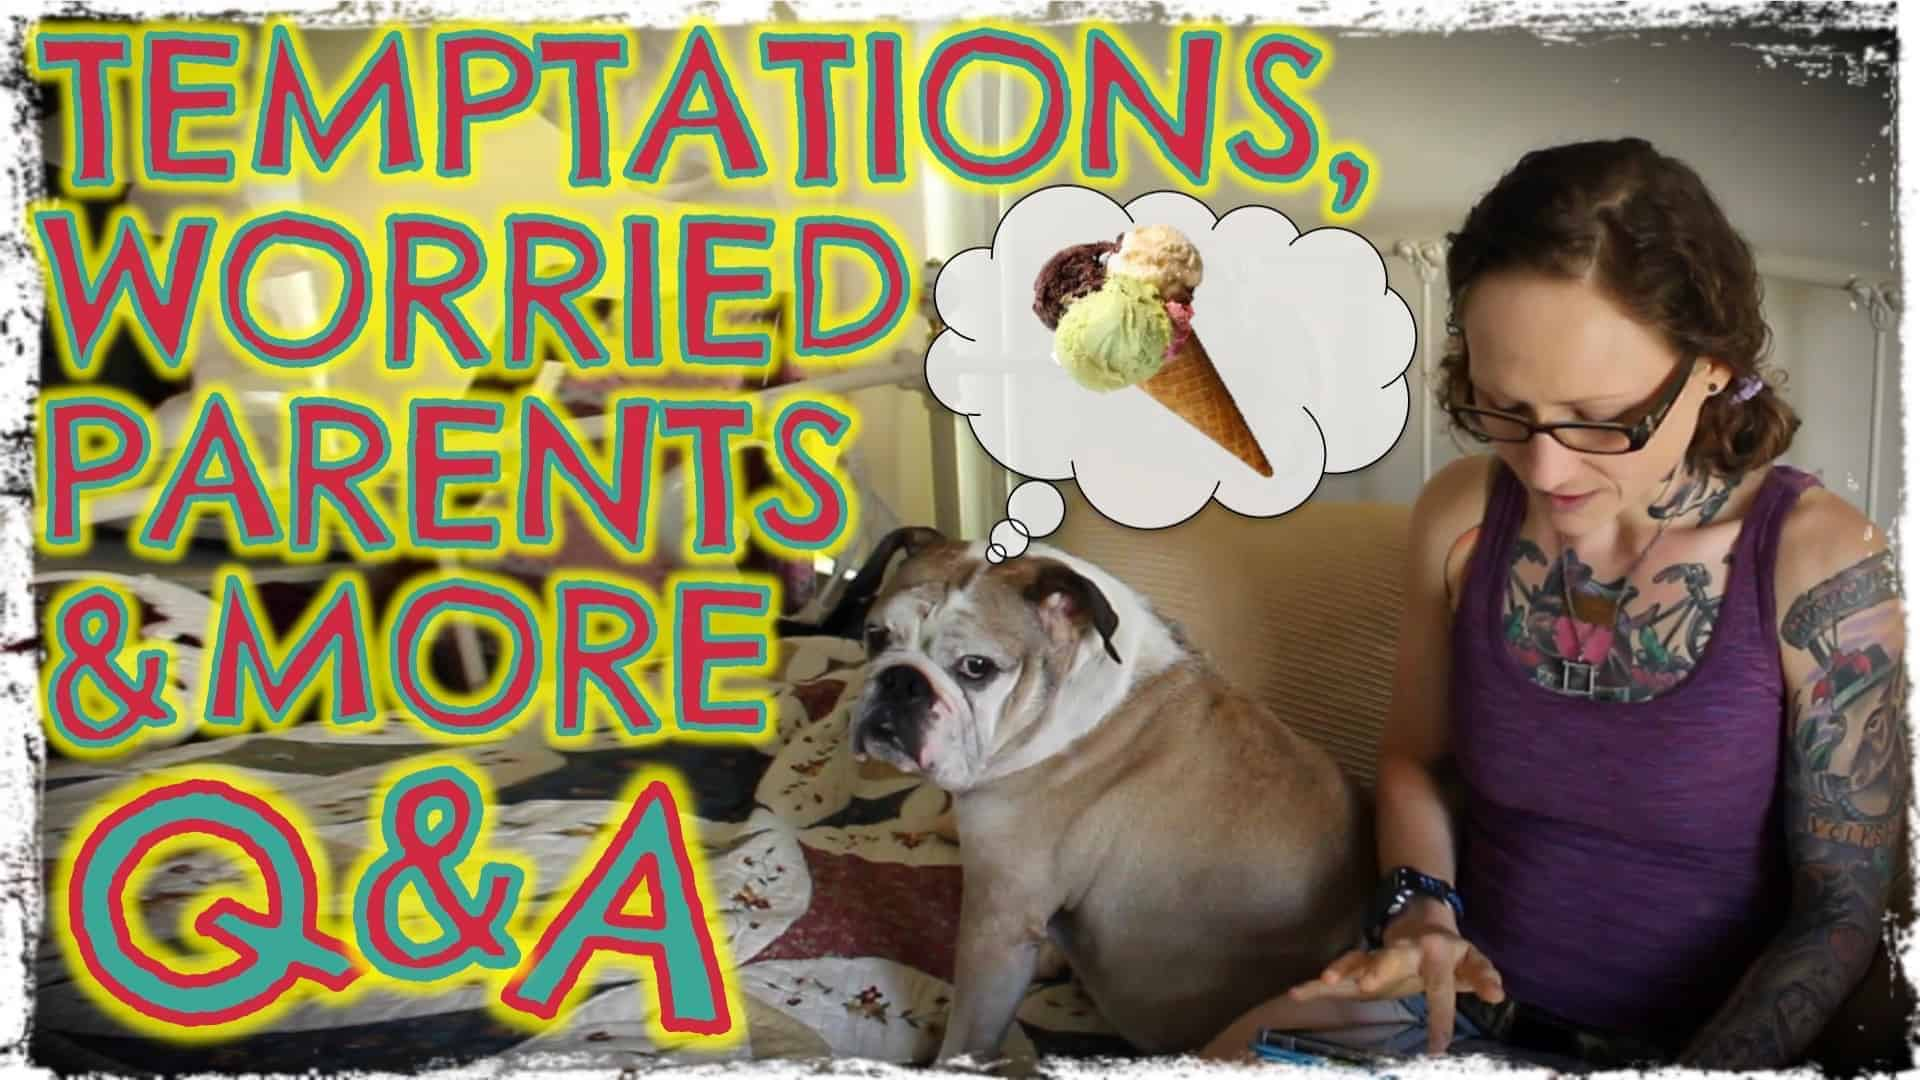 """Emily Moran Barwick of Bite Size Vegan is shown sat on a bed with her beloved bulldog, Ooby, next to her. She is reading from an iPad. Ooby has a thought bubble above his head with an ice cream cone in it. To the left in large letters are the words: """"Worried parents and more. Q and A""""."""